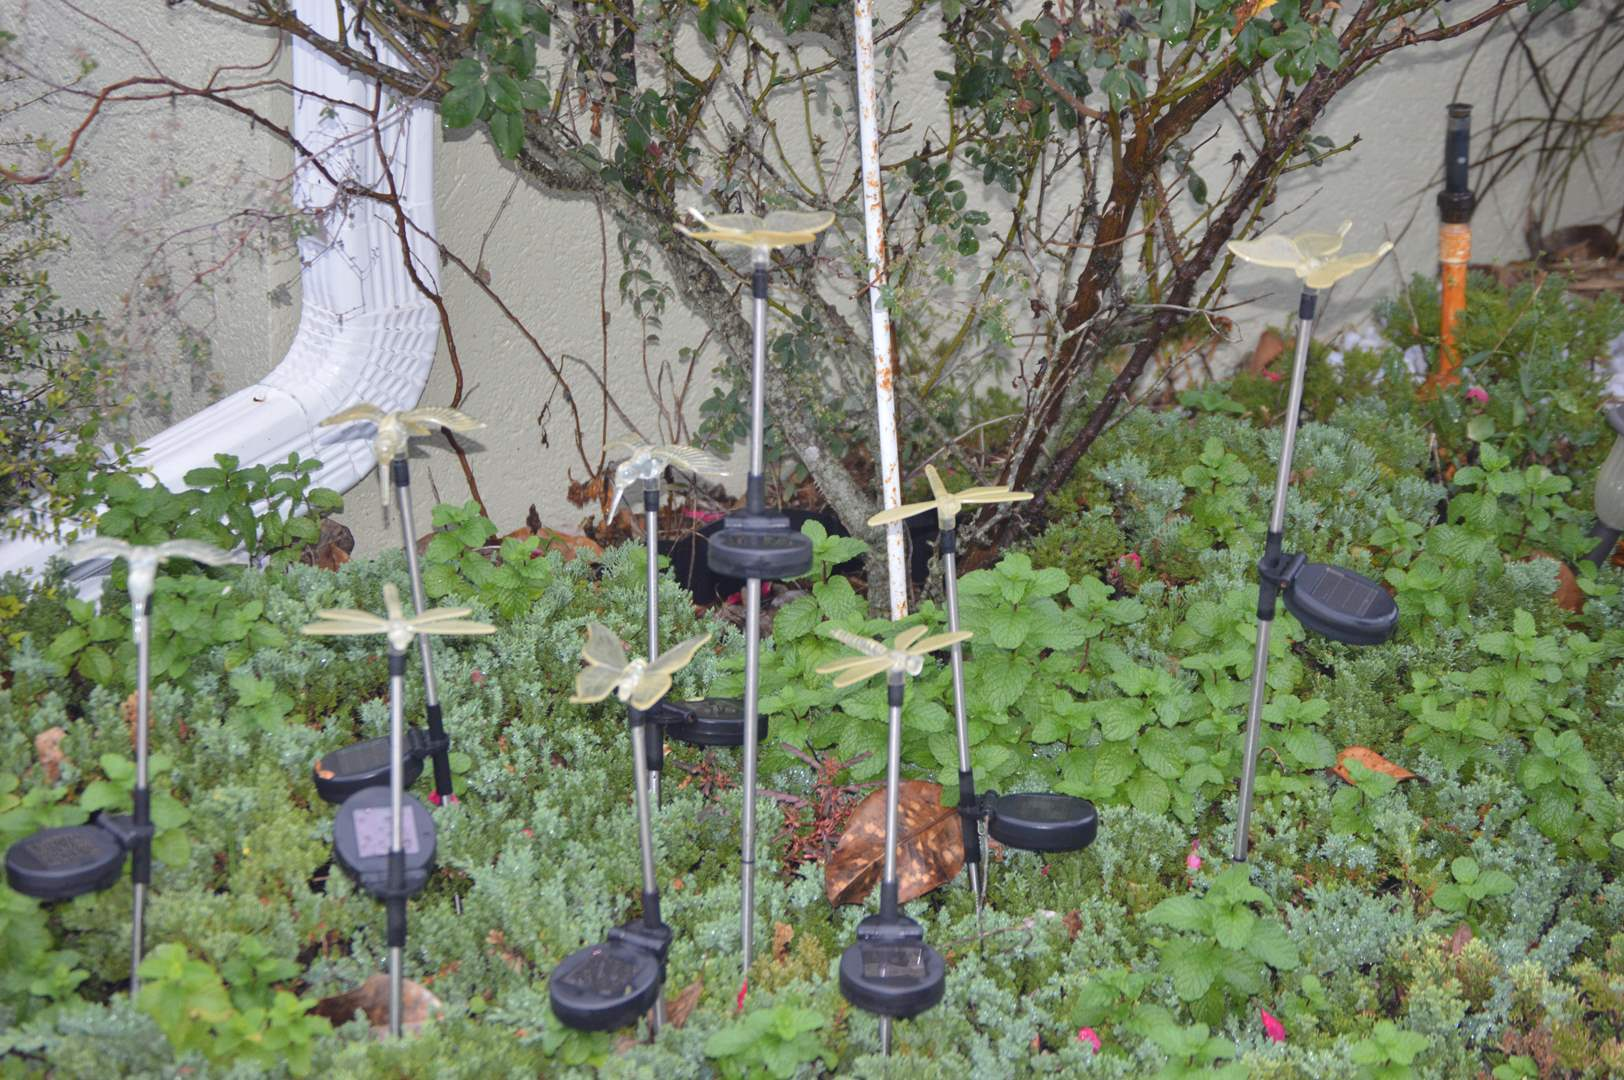 Lot # 239 Solar powered lights - Hummingbirds, butterflies & dragonflies (main image)